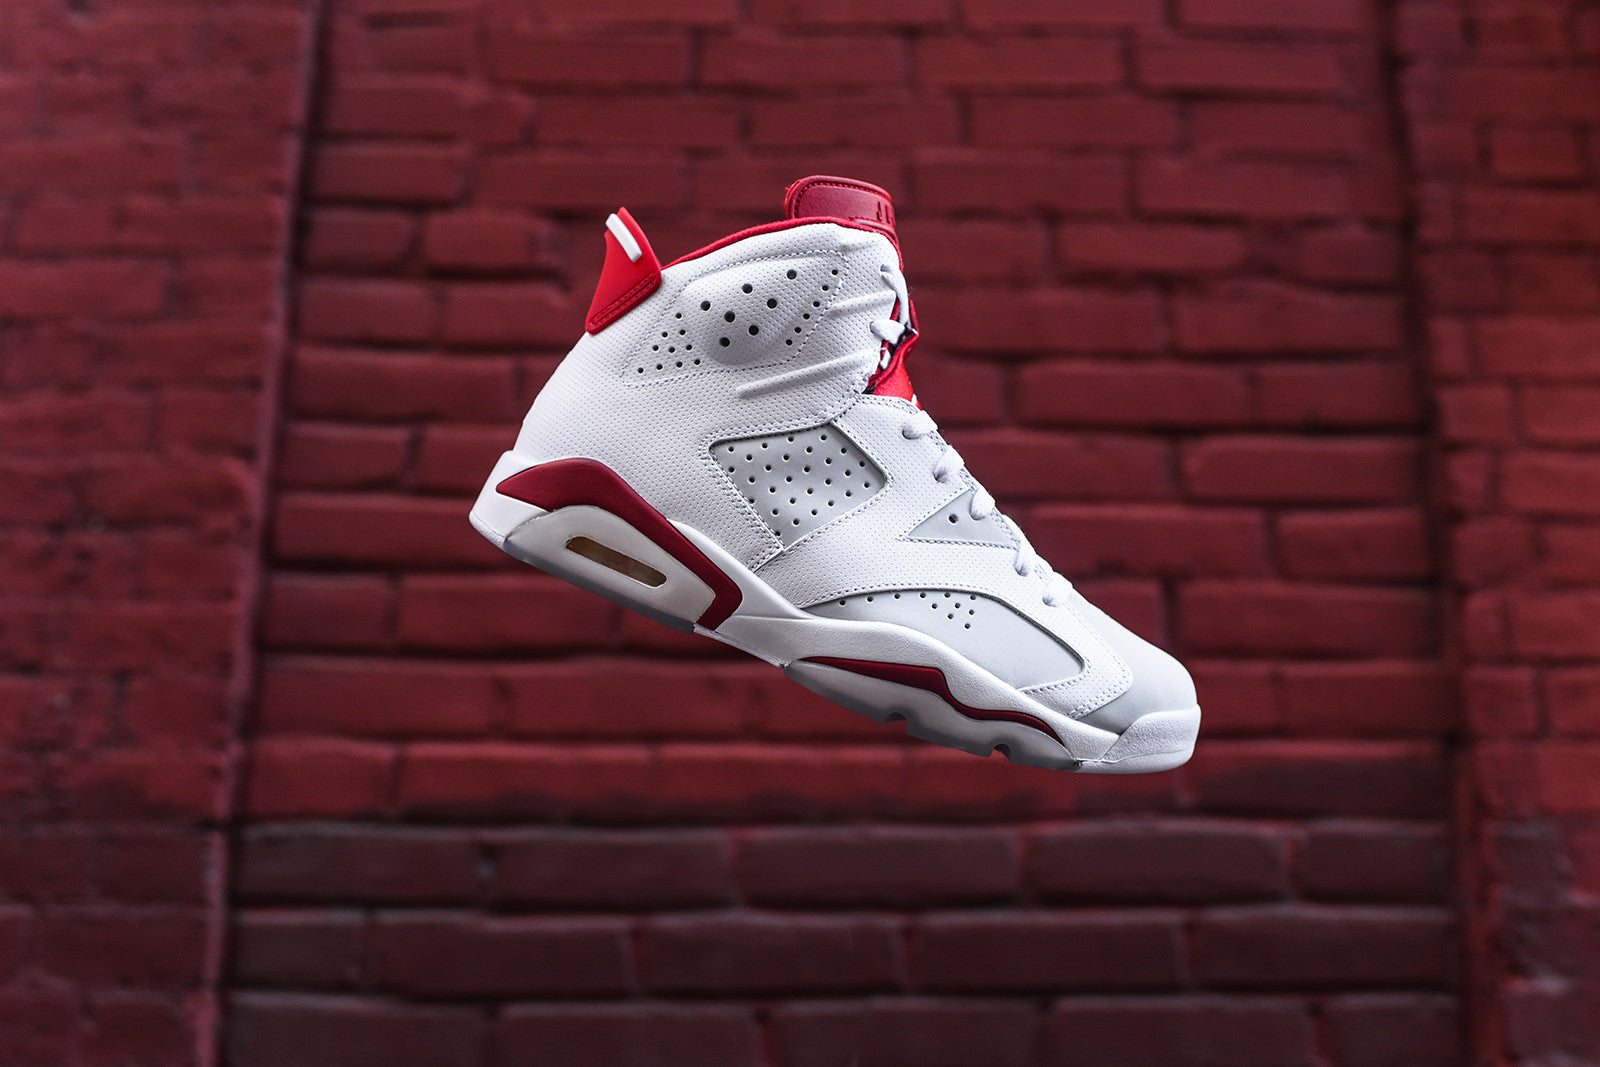 Nike Air Jordan 6 Retro - White / Gym Red